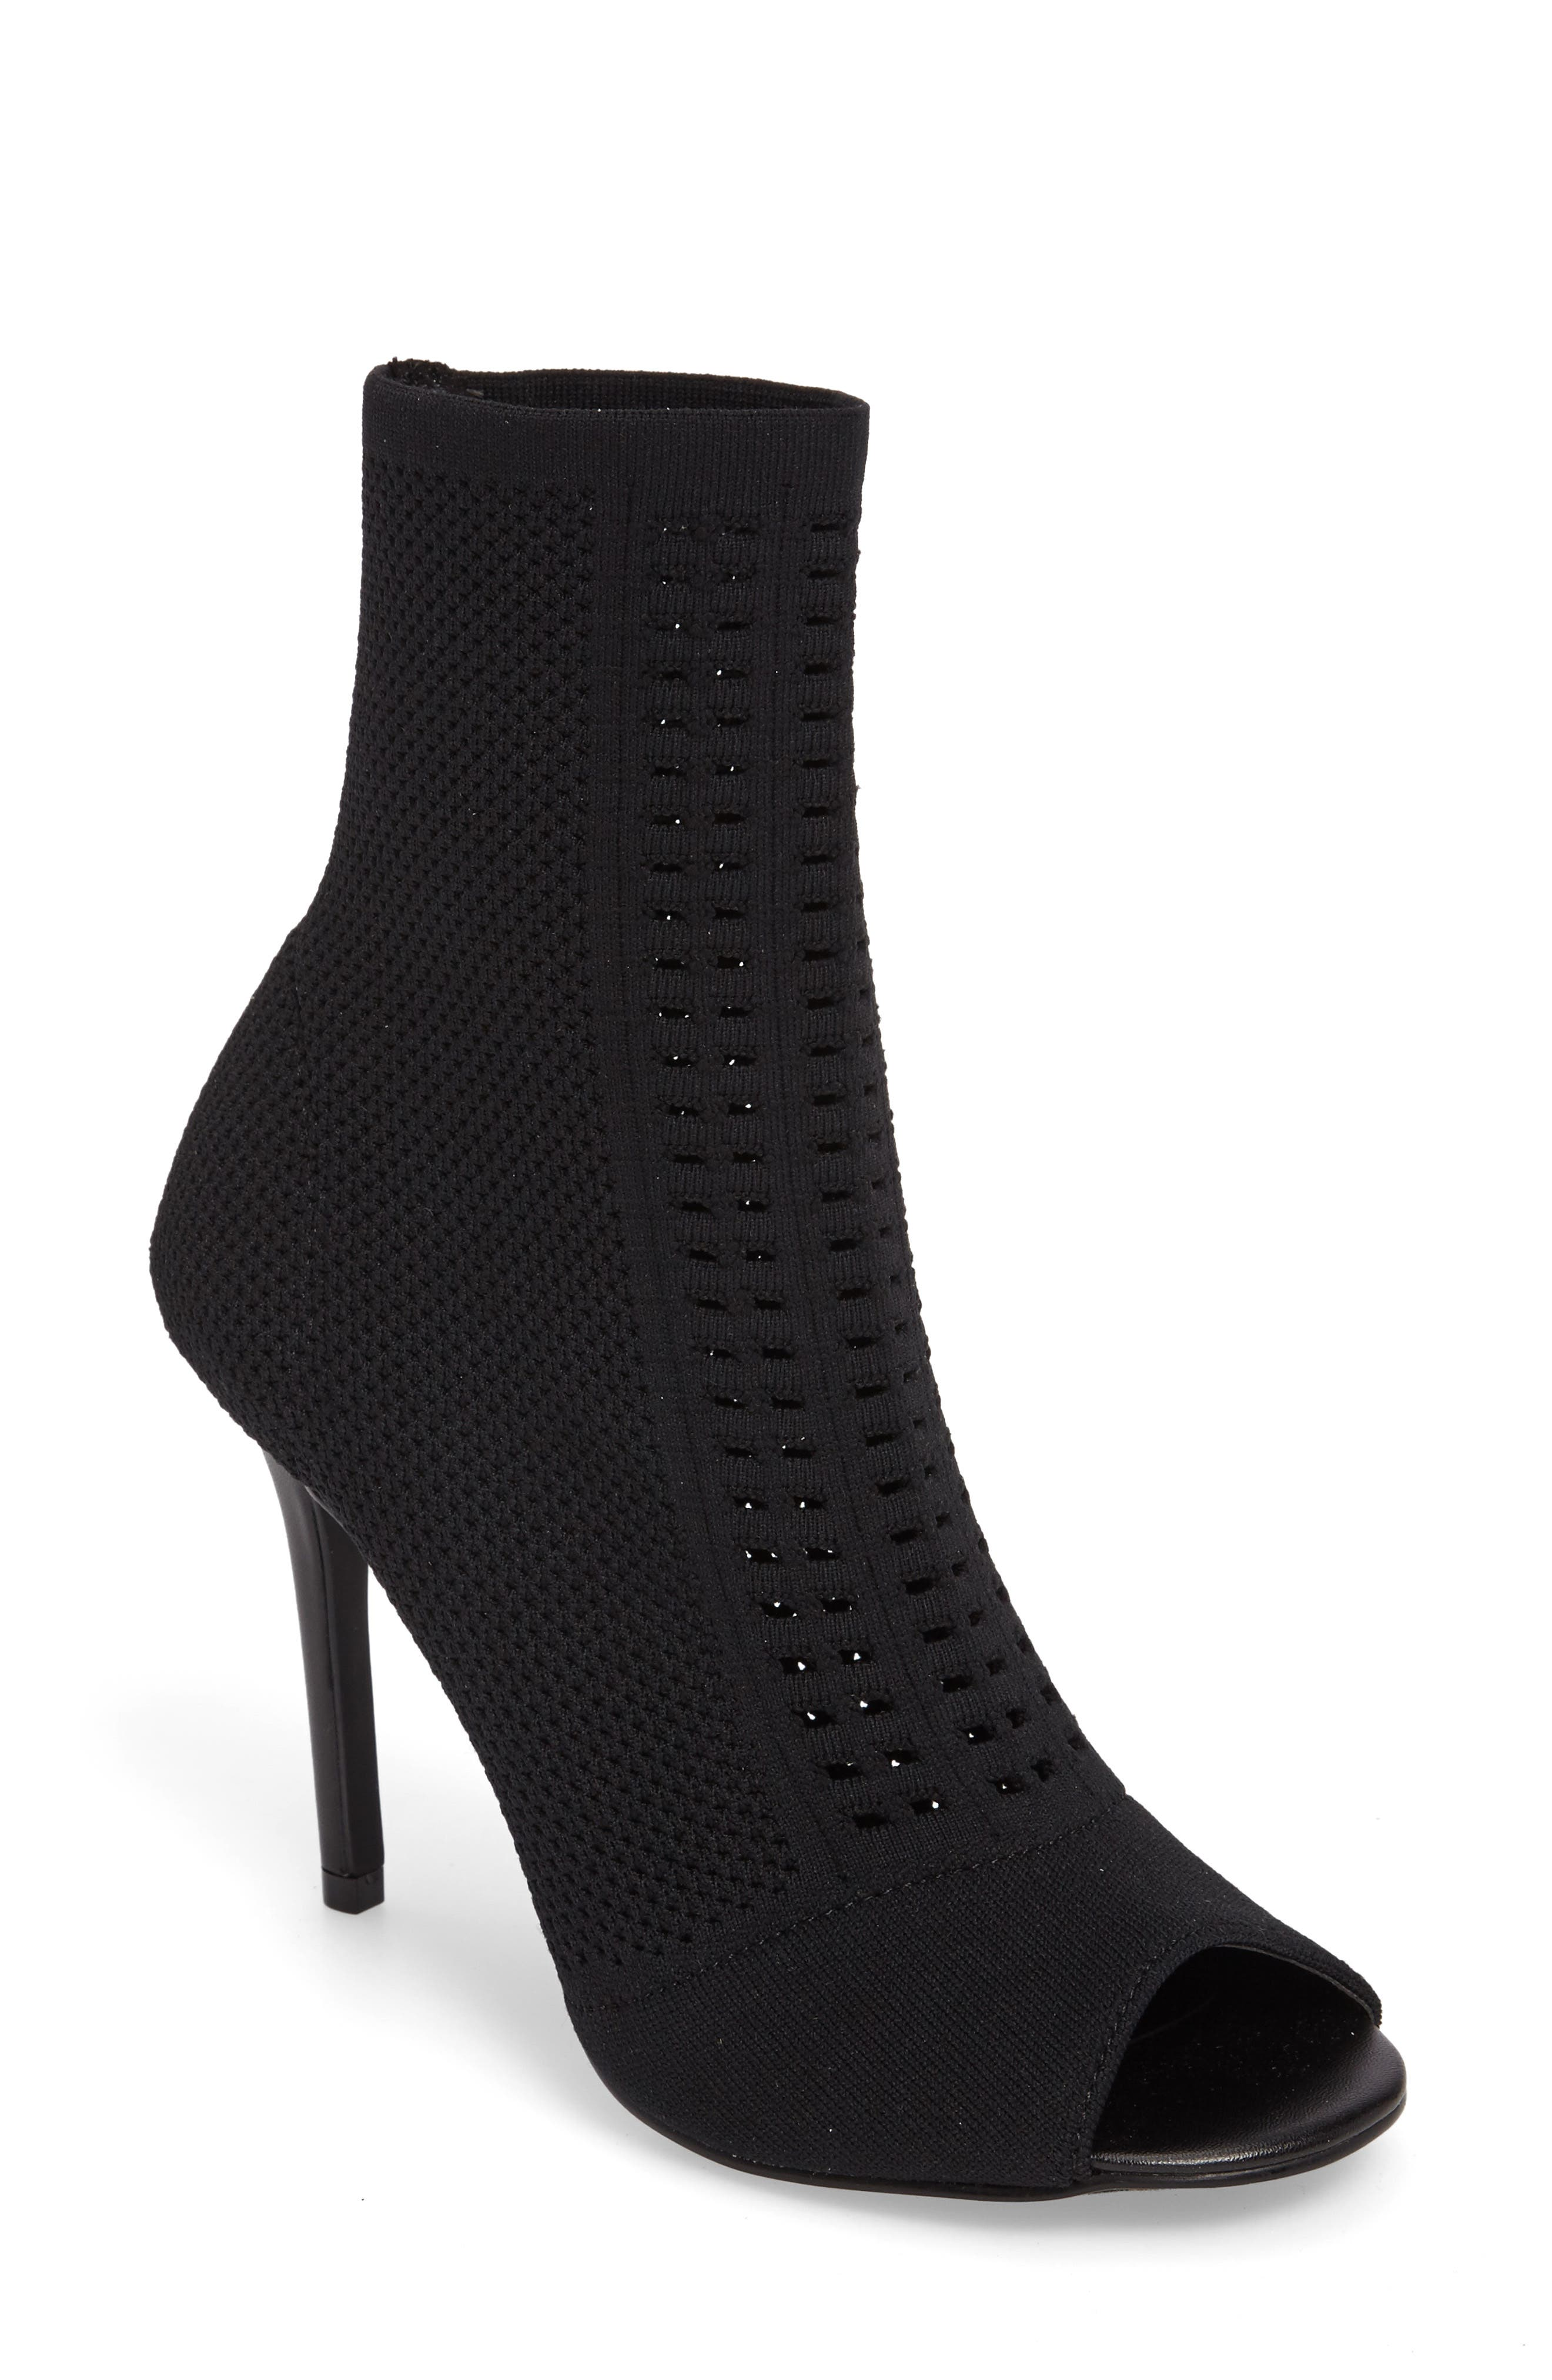 Rebellious Knit Peep Toe Bootie,                             Main thumbnail 1, color,                             001